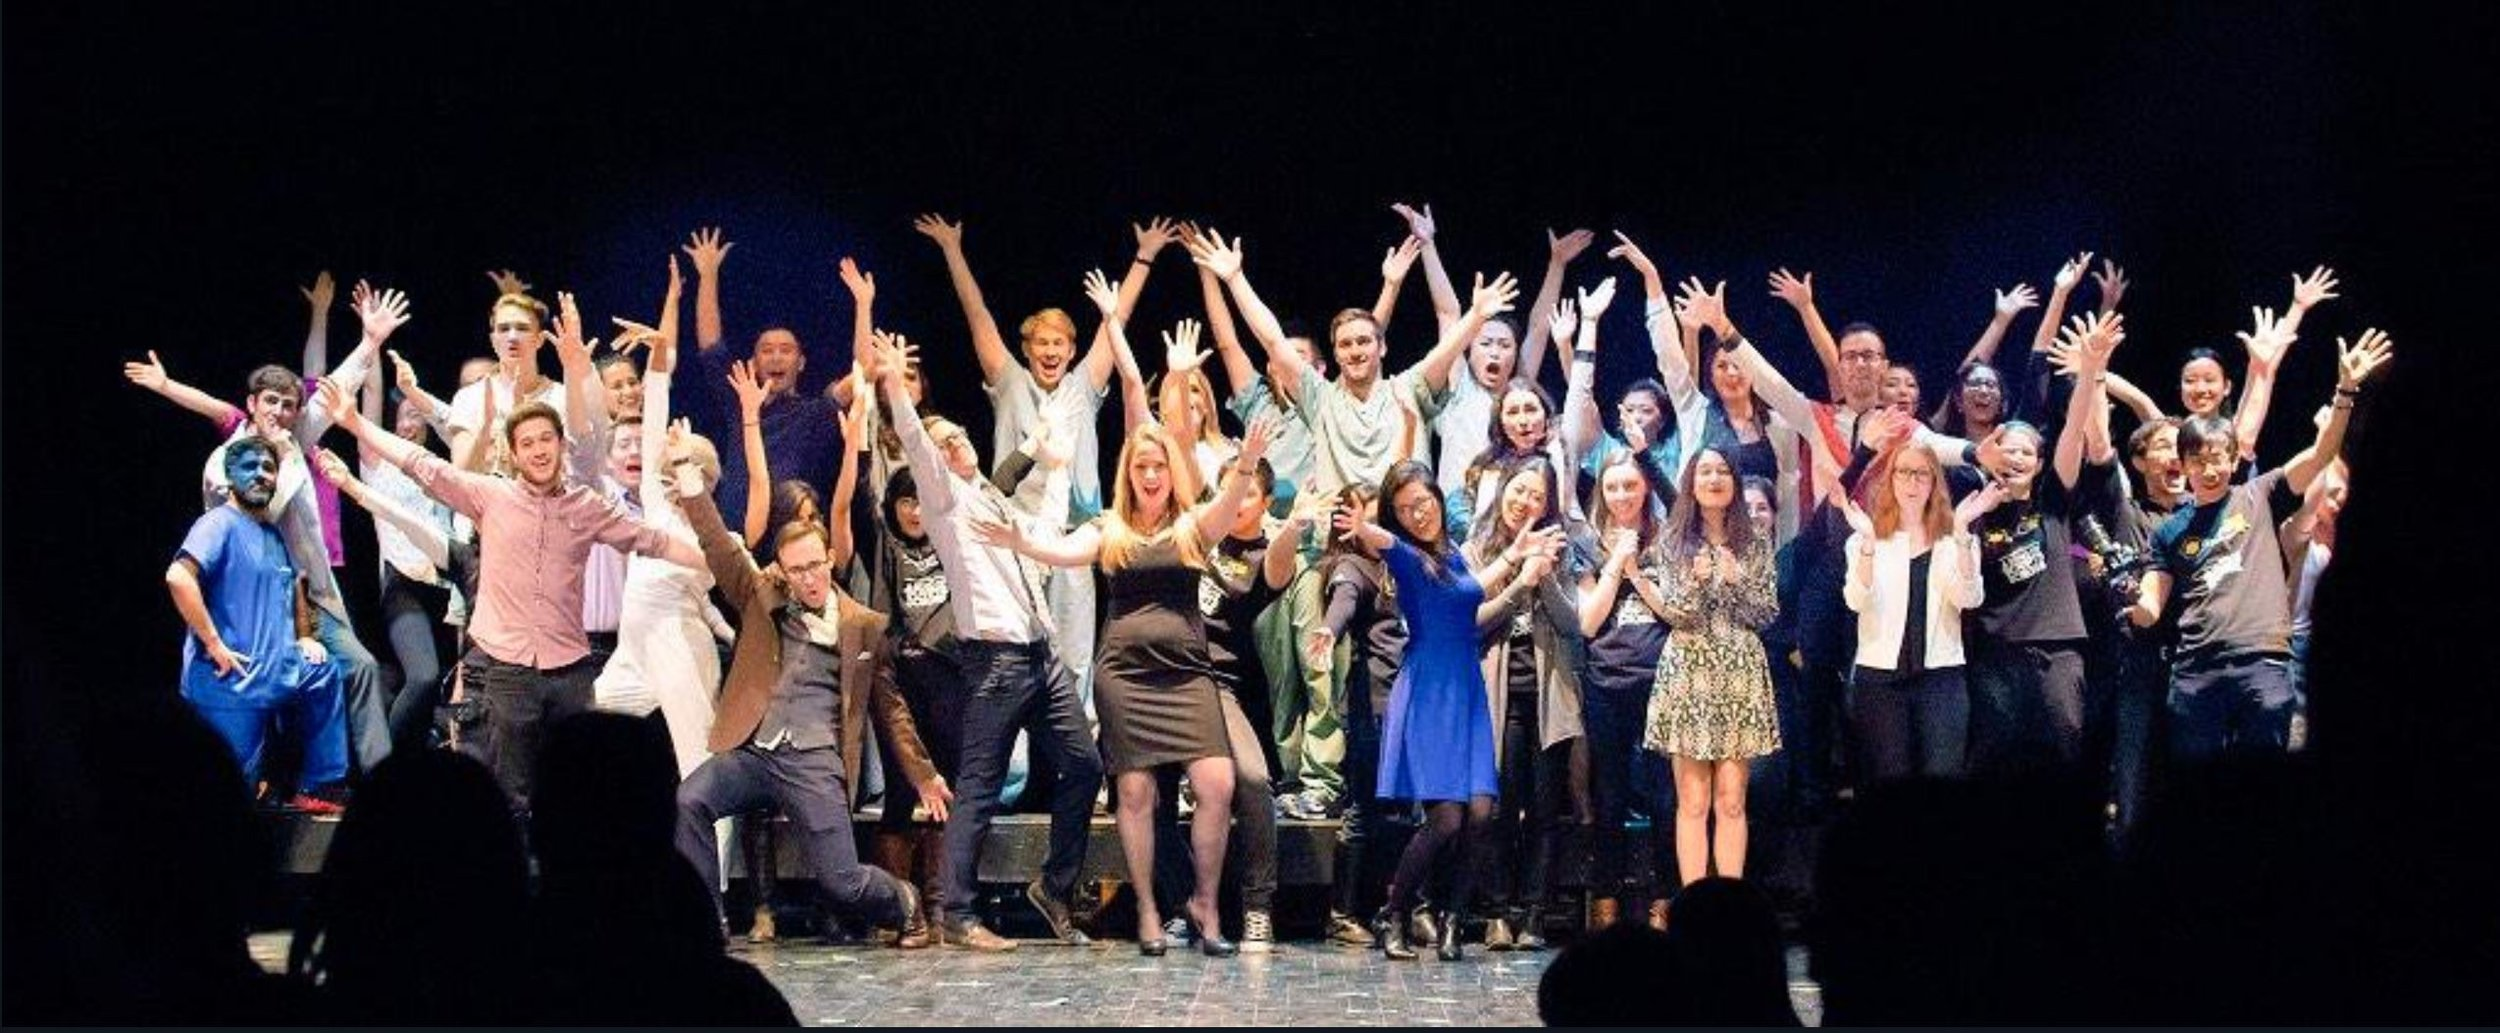 The U of T Musical Production circa 2015